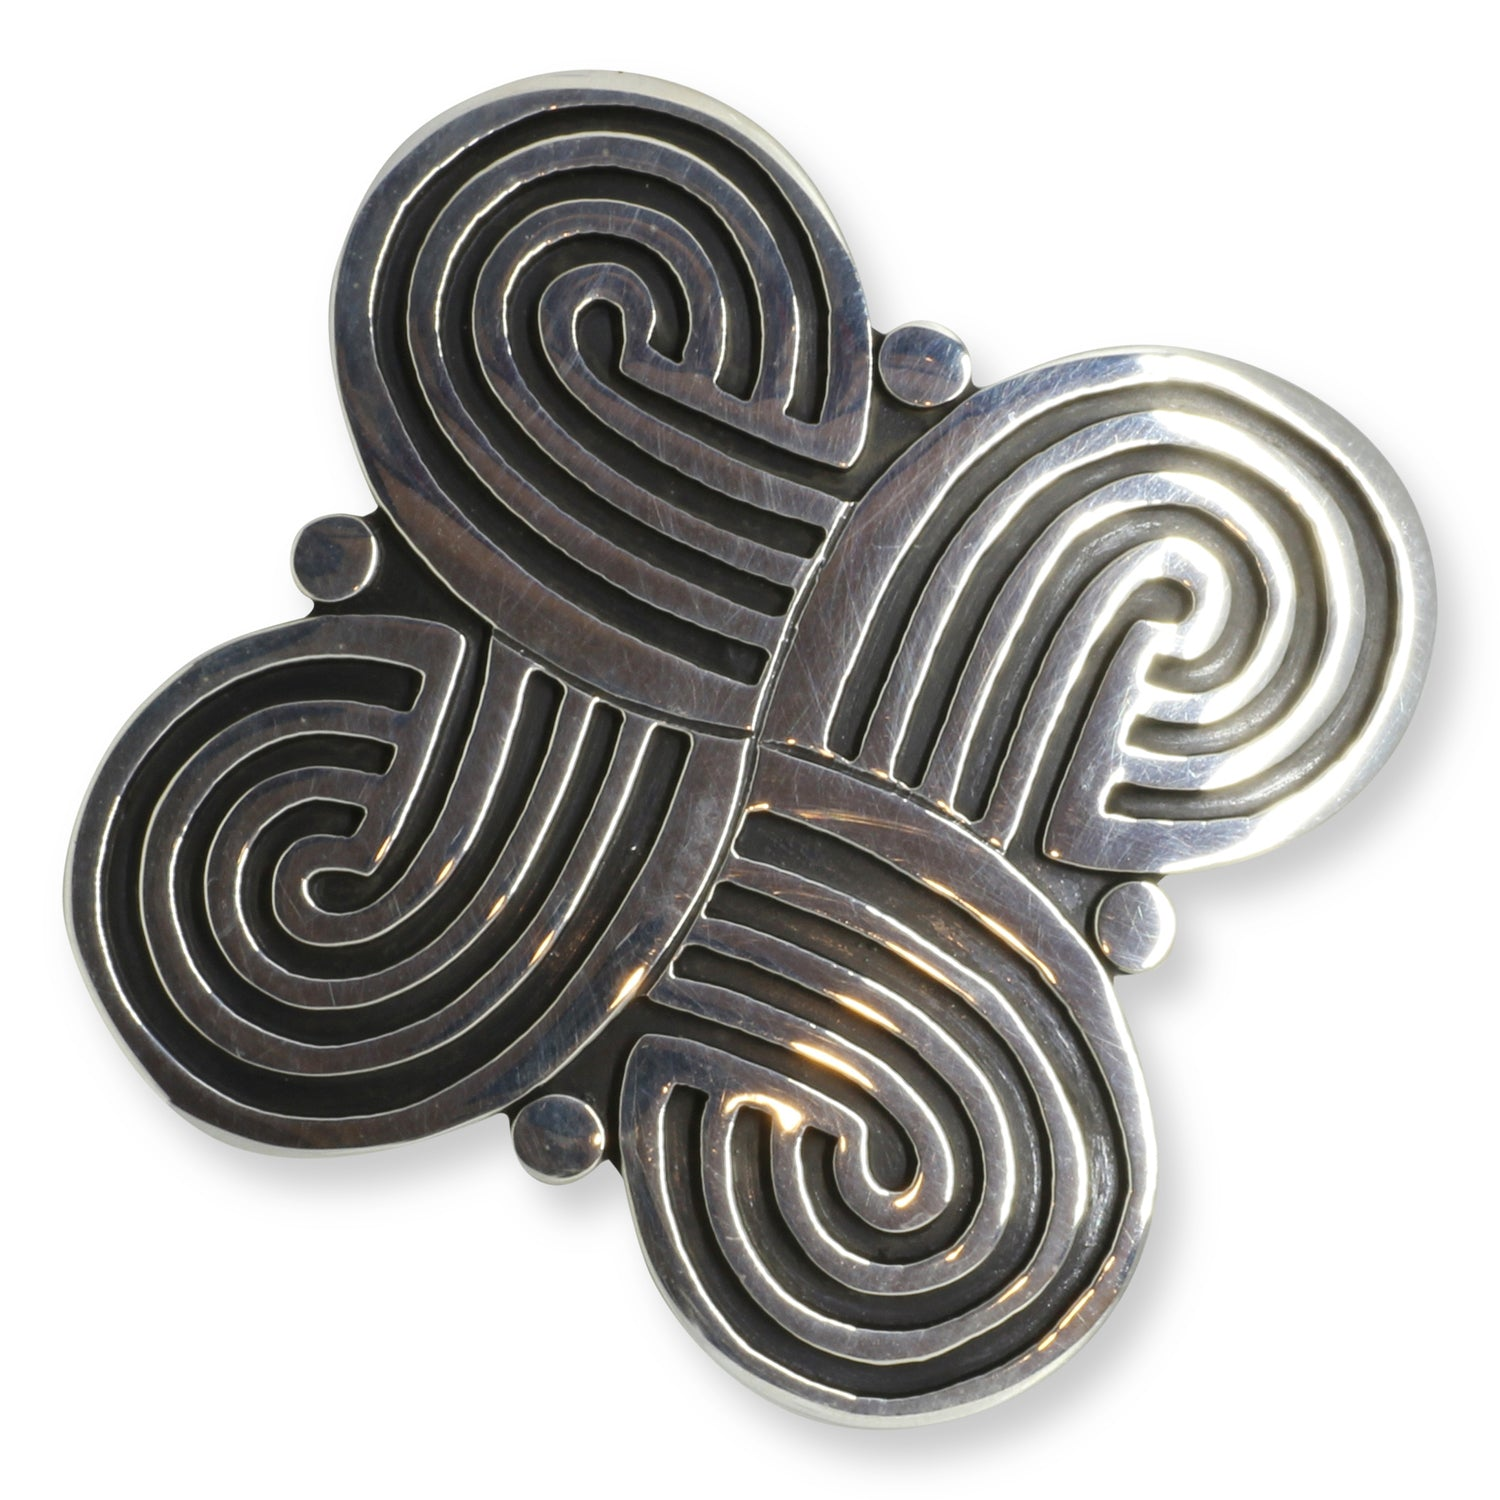 tiger store brooch celtic pewter eye